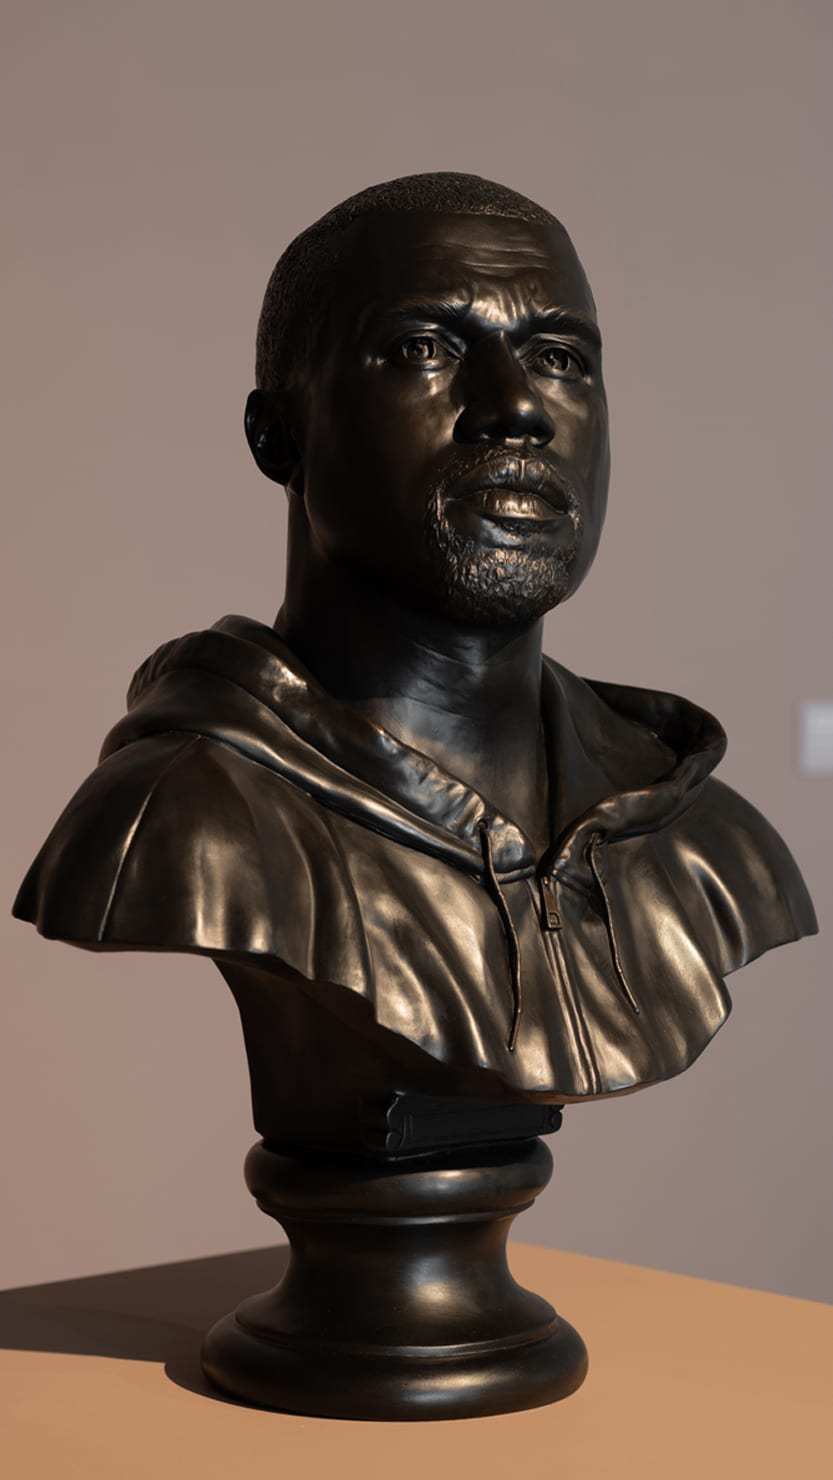 A close up of Kanye, 2015 by Kehinde Wiley on display in Plymouth's Levinsky Gallery, autumn 2020